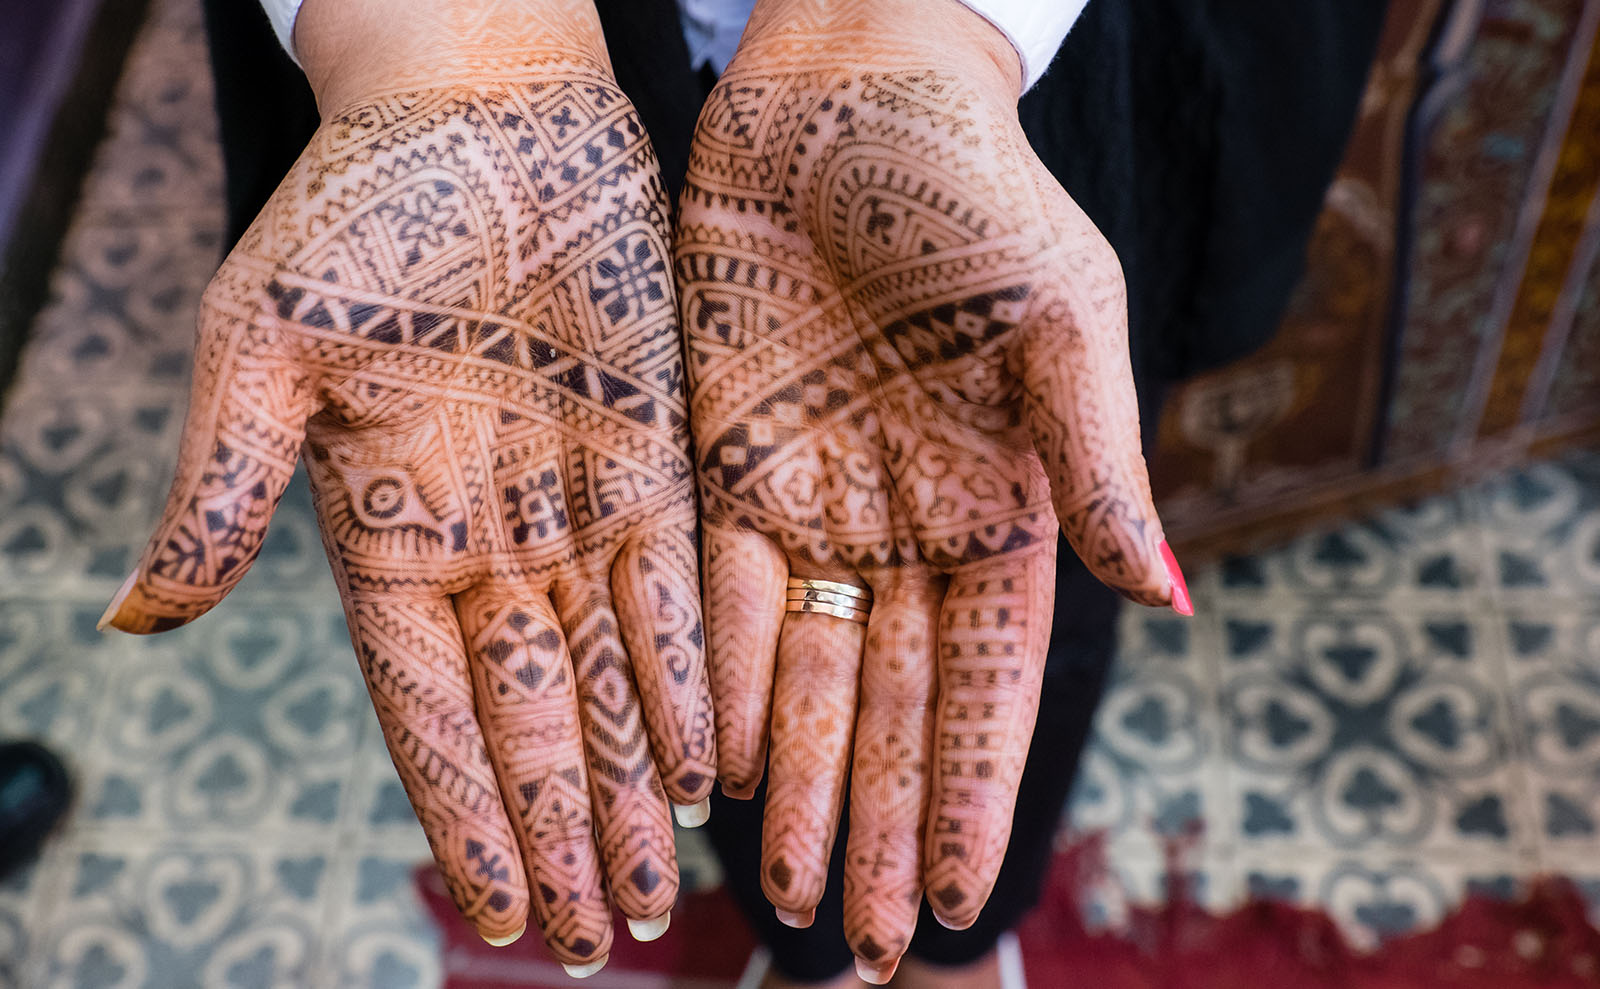 a woman's hands displaying dark henna tattoos